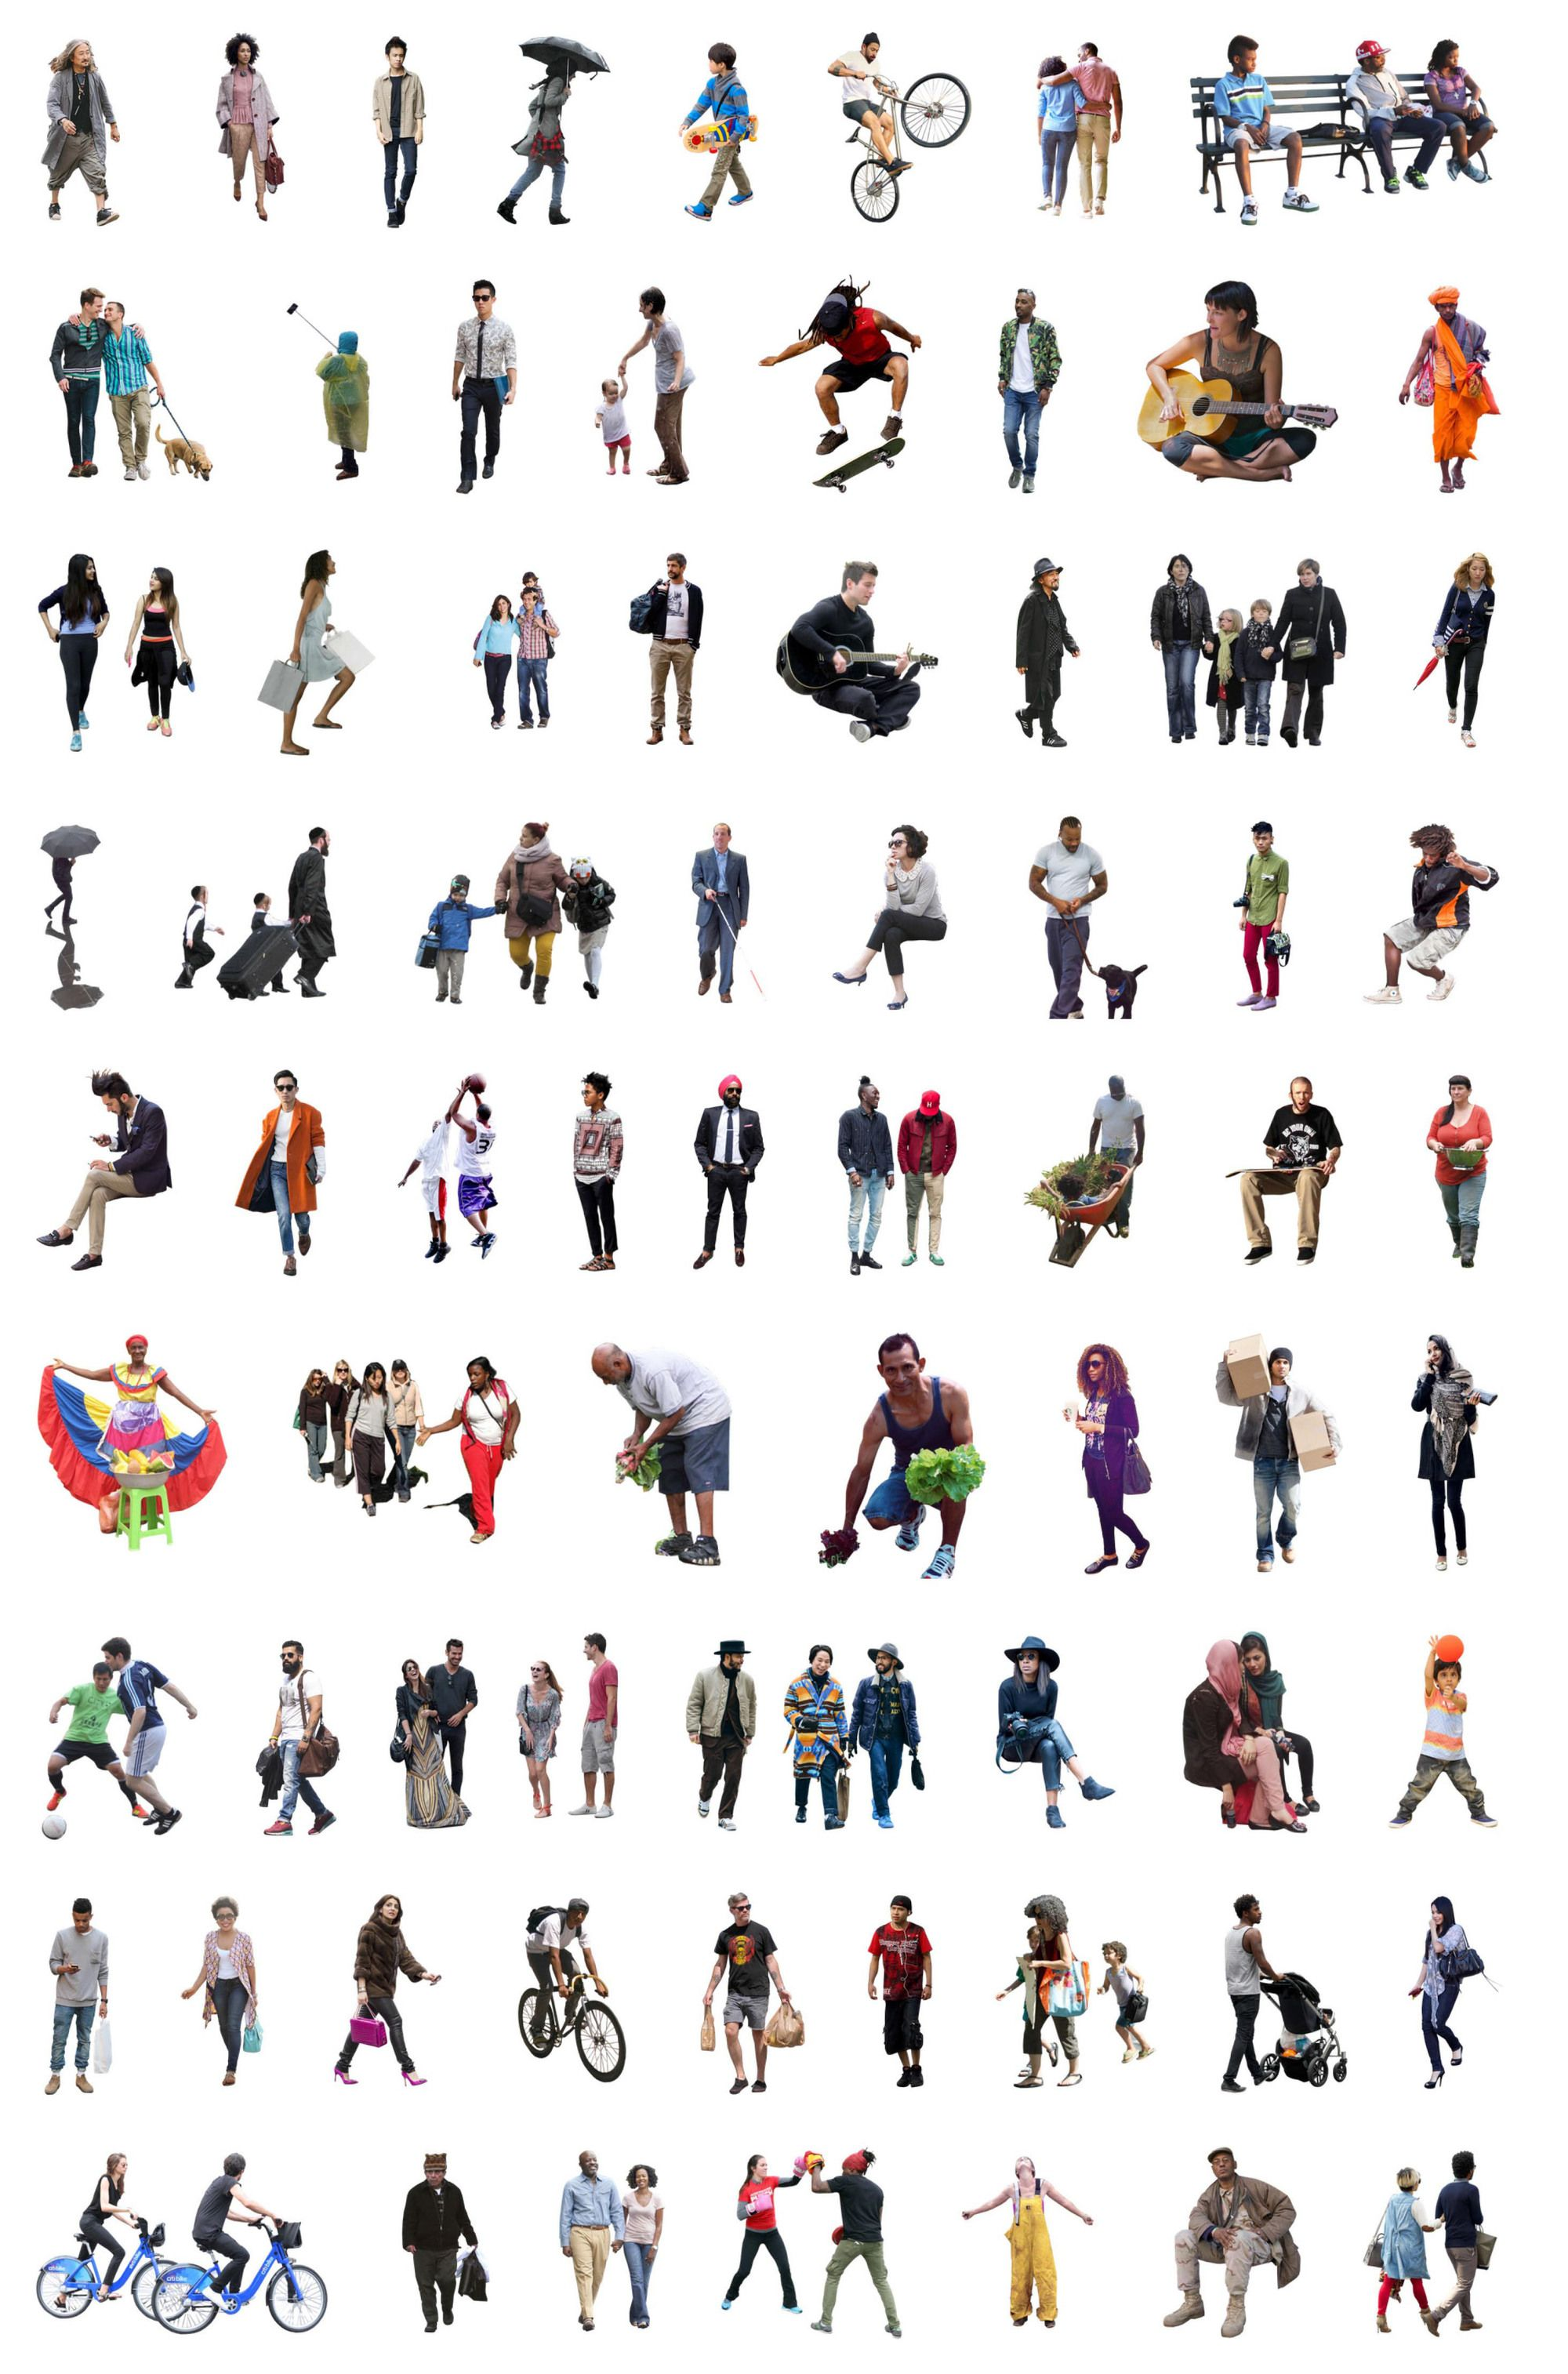 Gallery Of 5 Places To Download Free Ethnically Diverse Render People 1 Render People Architecture People People Cutout